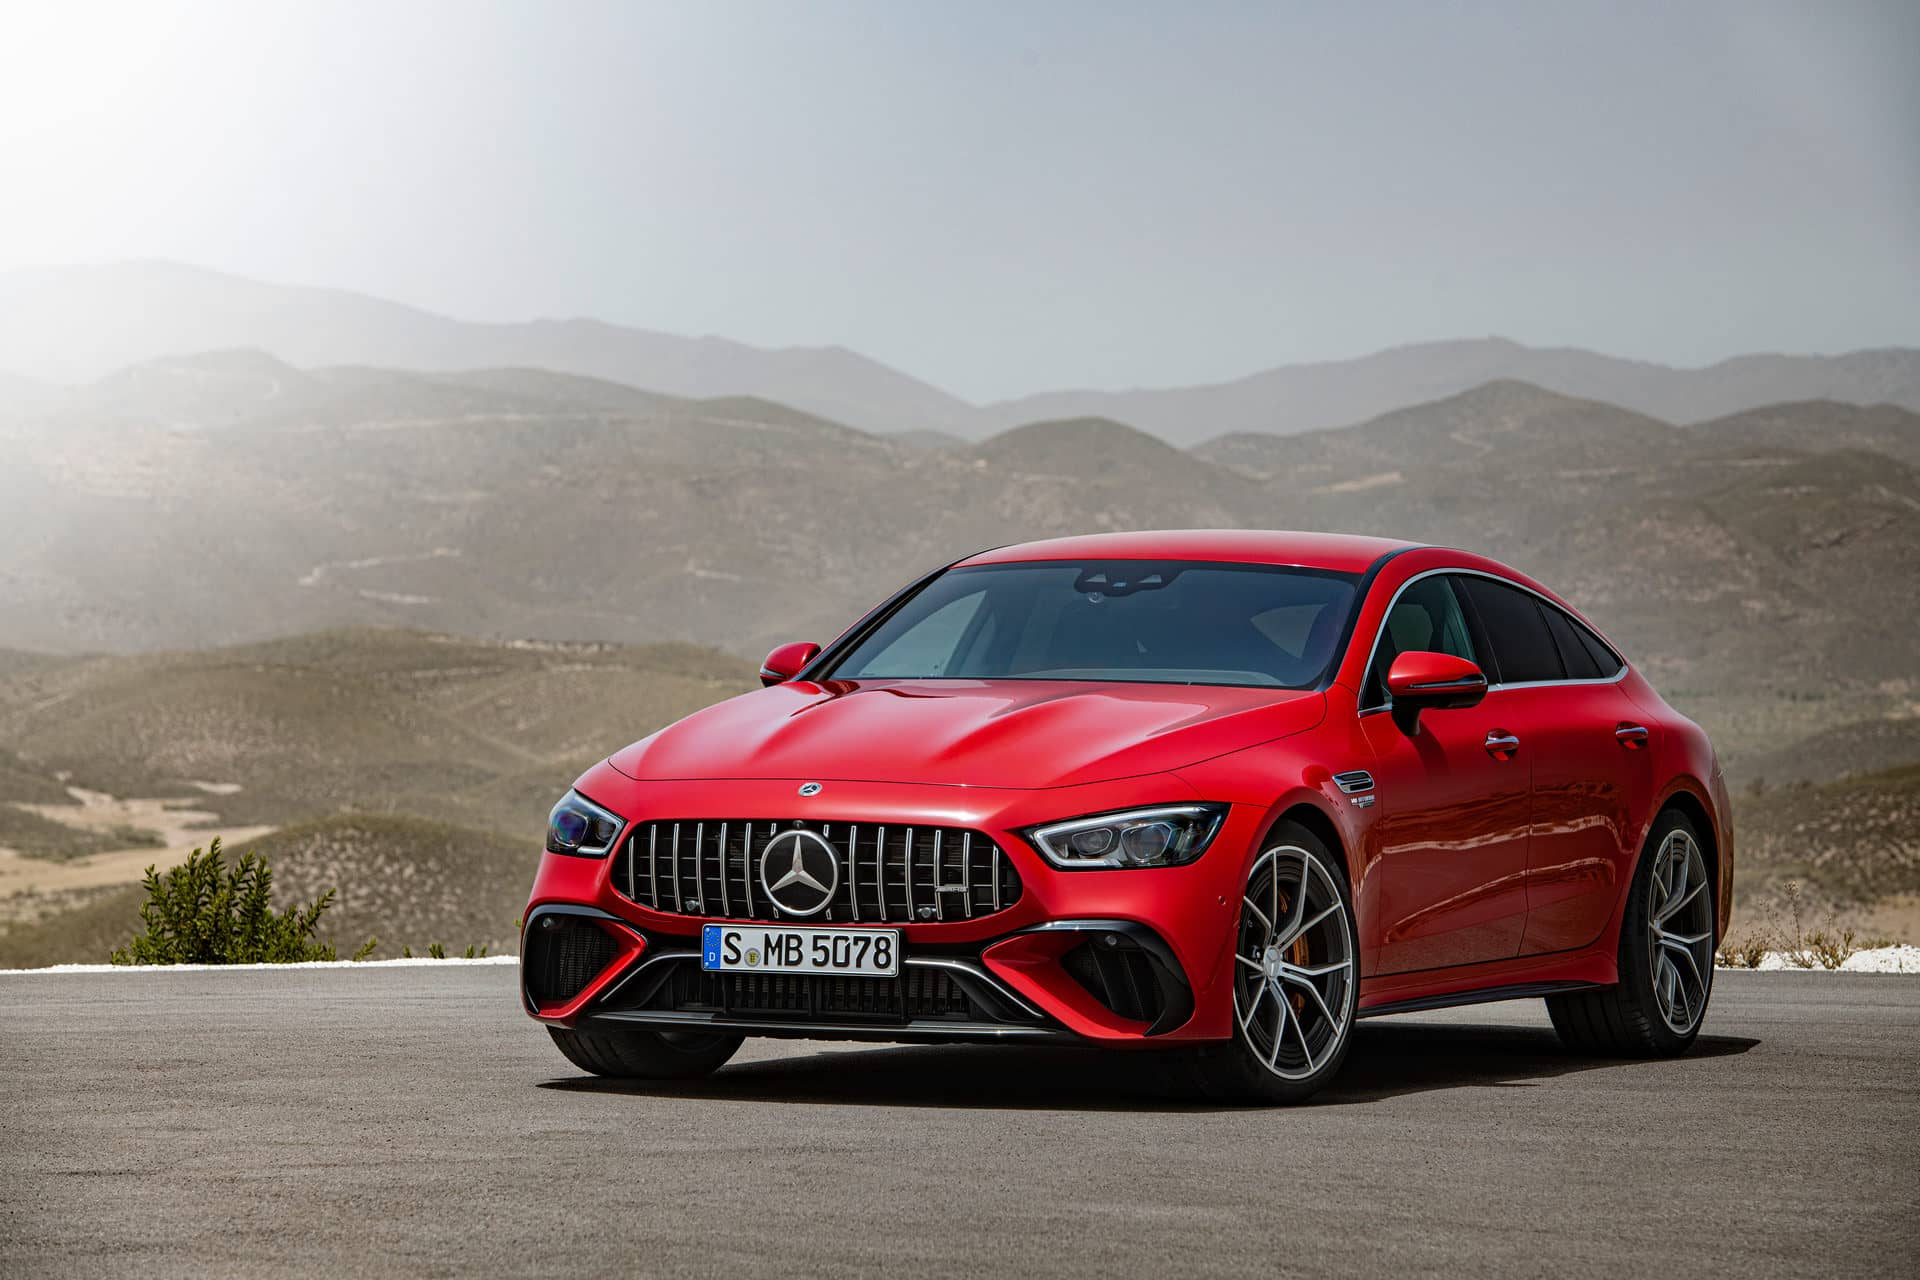 mercedes-amg gt 63 s eperformance (14)